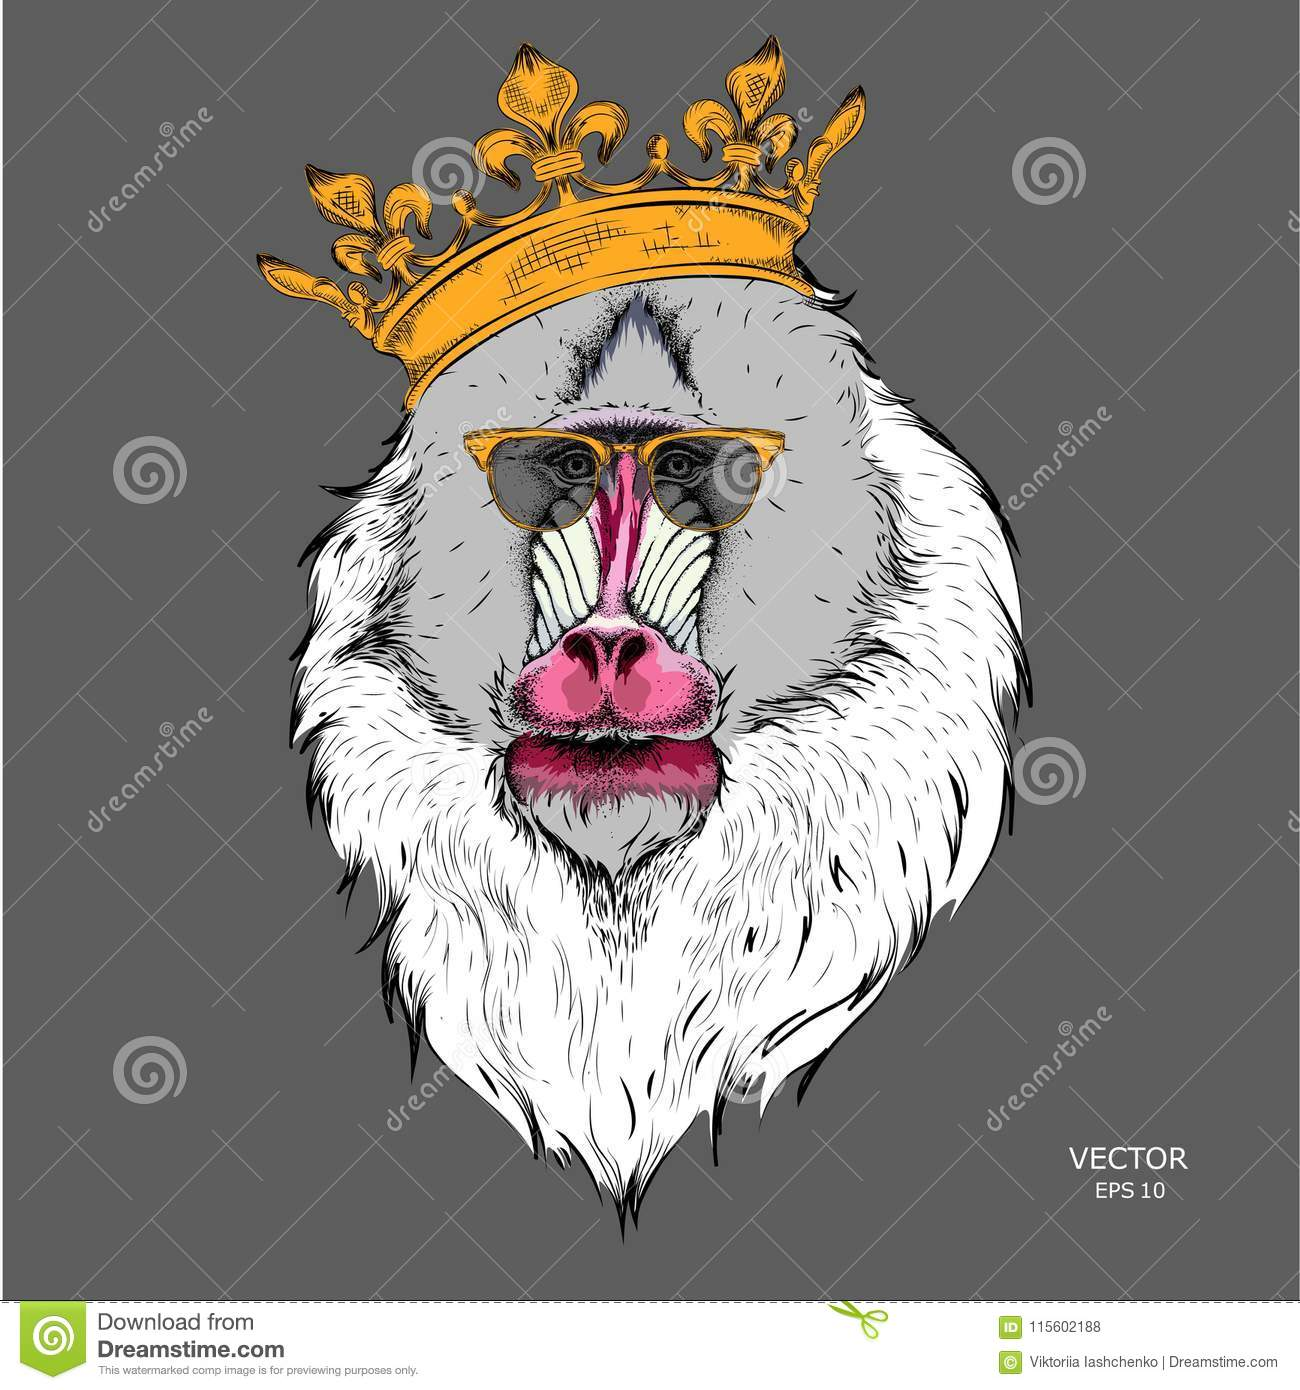 Download Drawn Monkey Mandrill In A Crown Vector Illustration Of Ape Stock